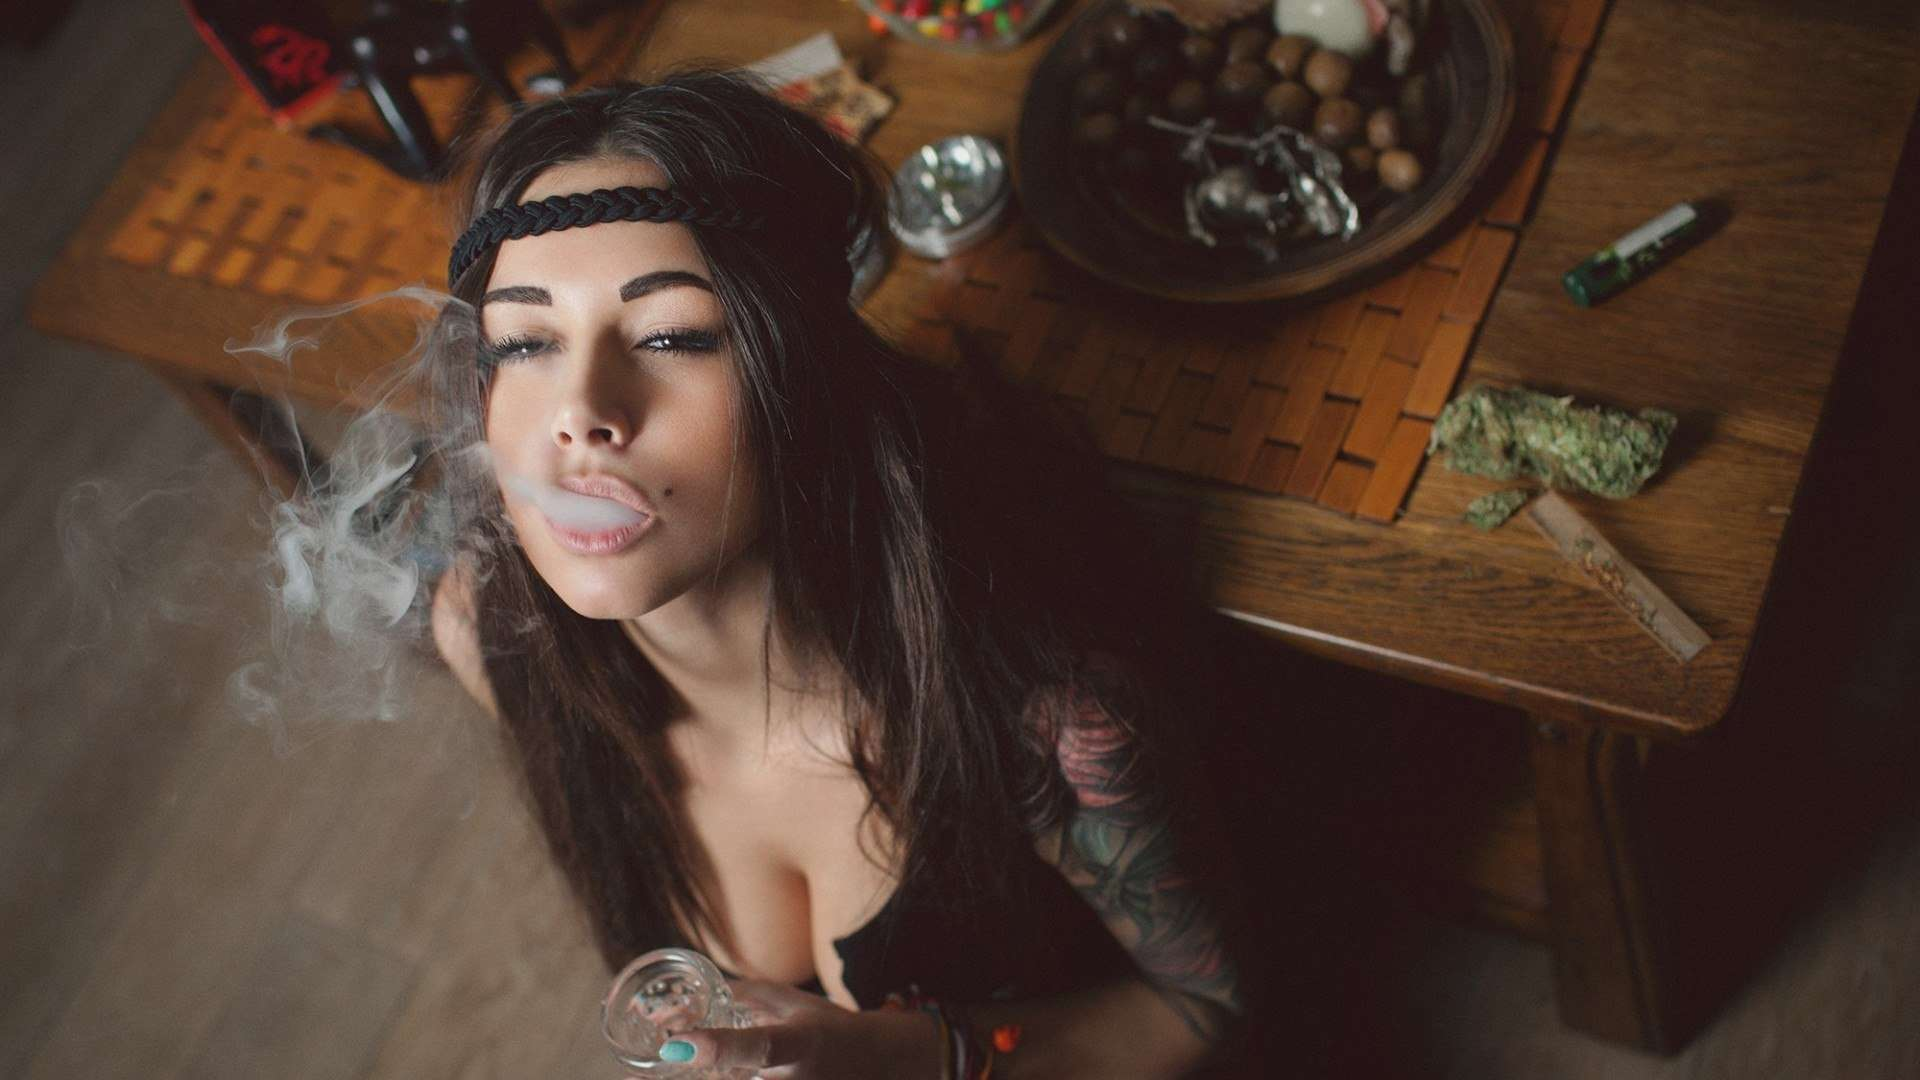 Sexy girls that smoke weed